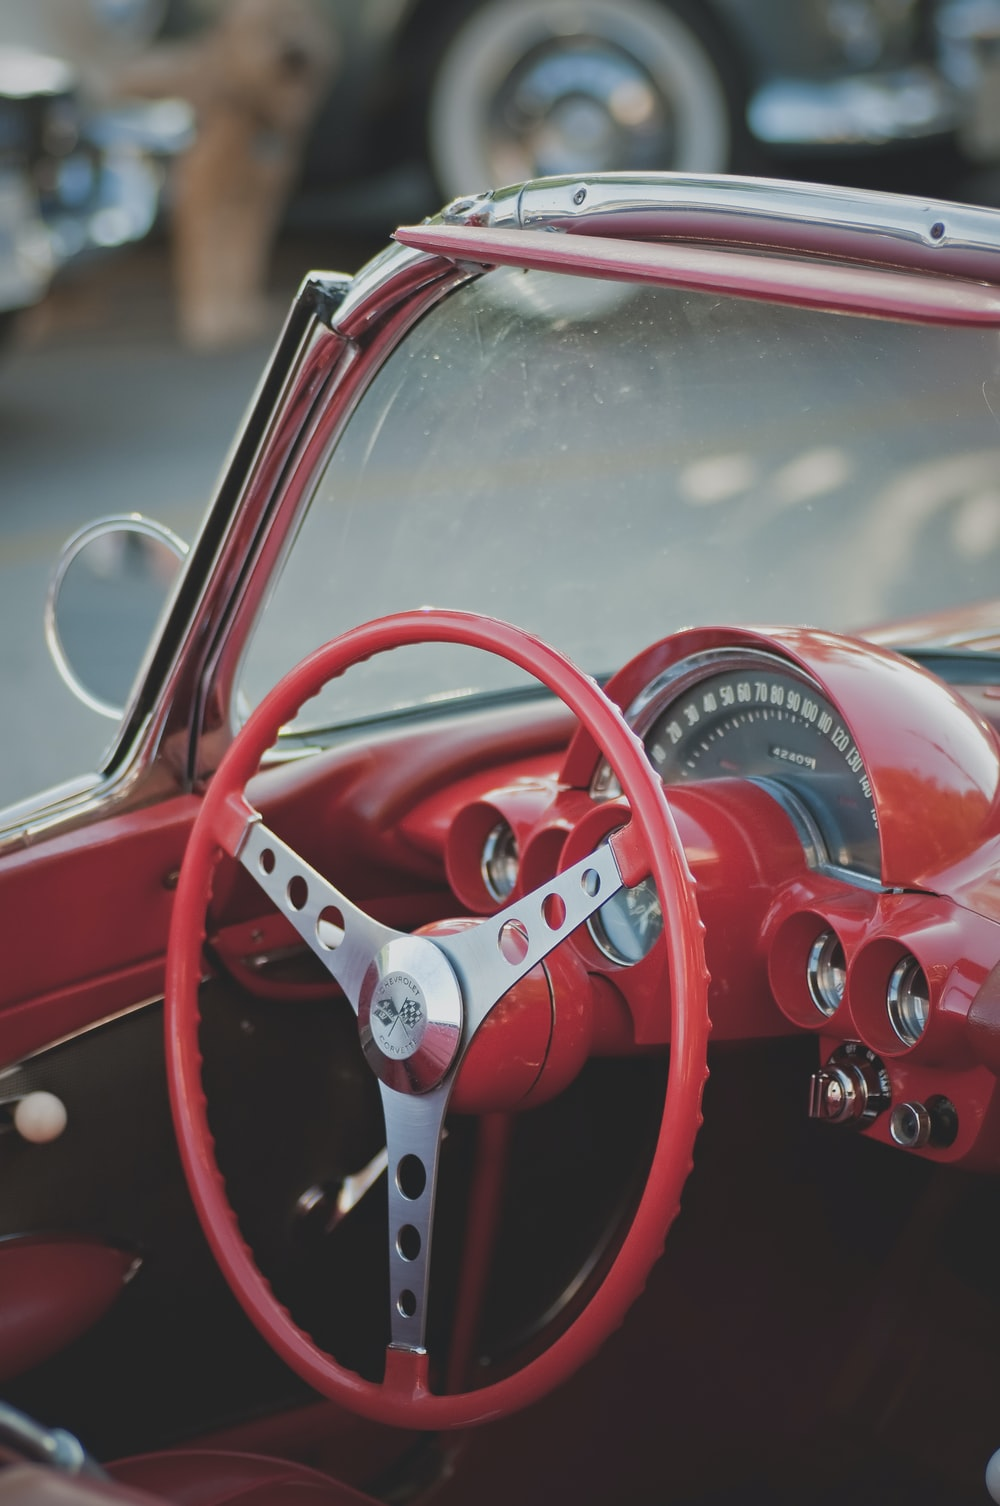 red vehicle steering wheel in closeup photo